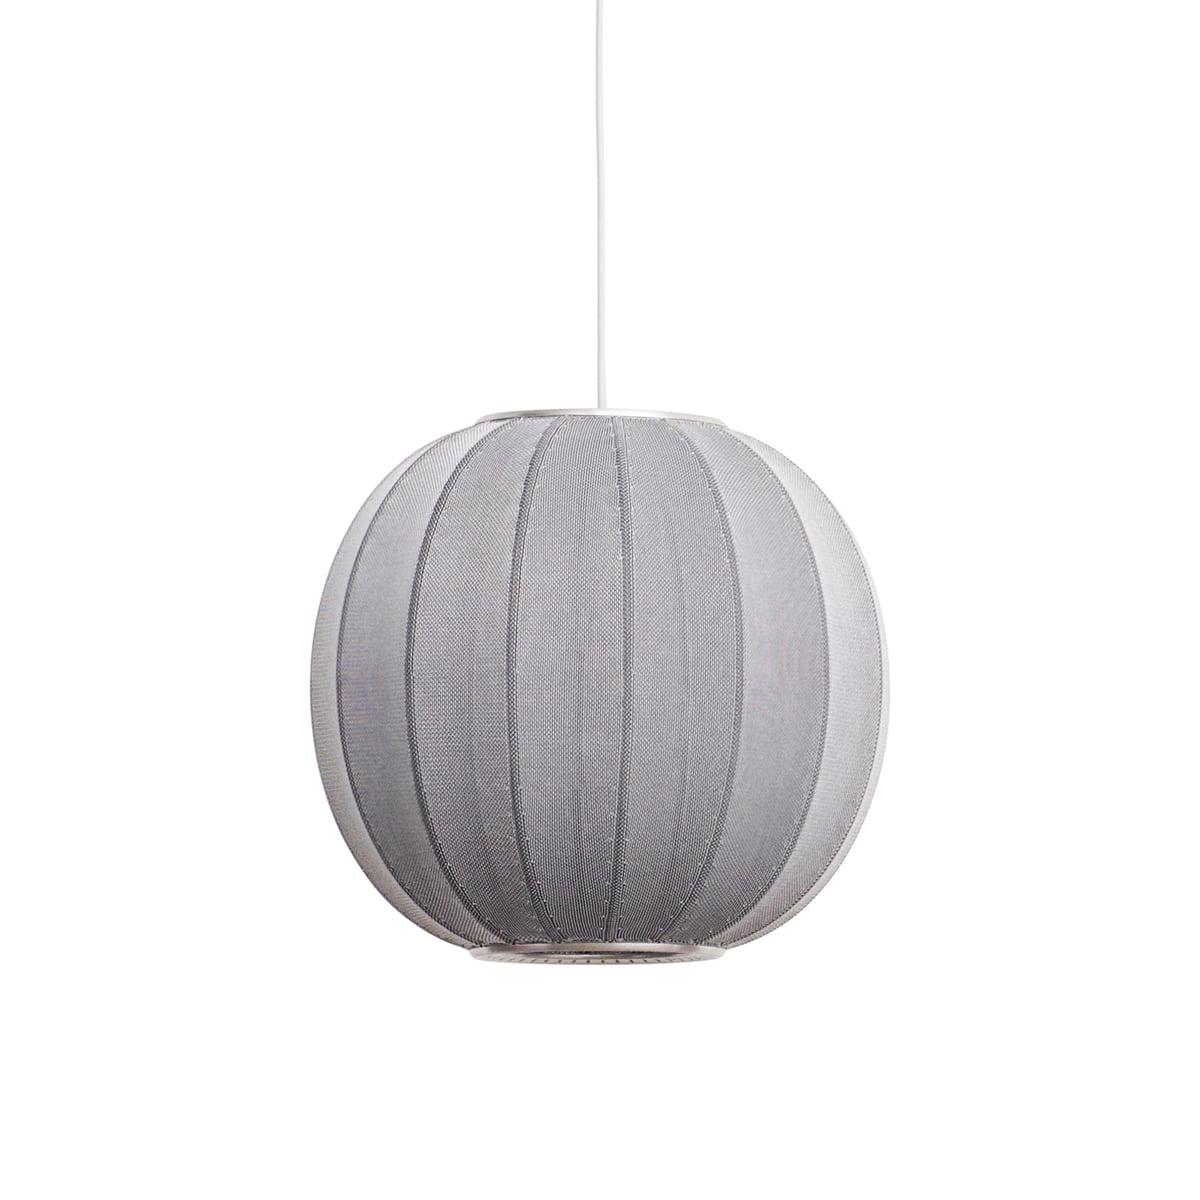 Knit wit pendant lamp by made by hand made by hand knit wit pendant lamp 45 cm silver aloadofball Gallery